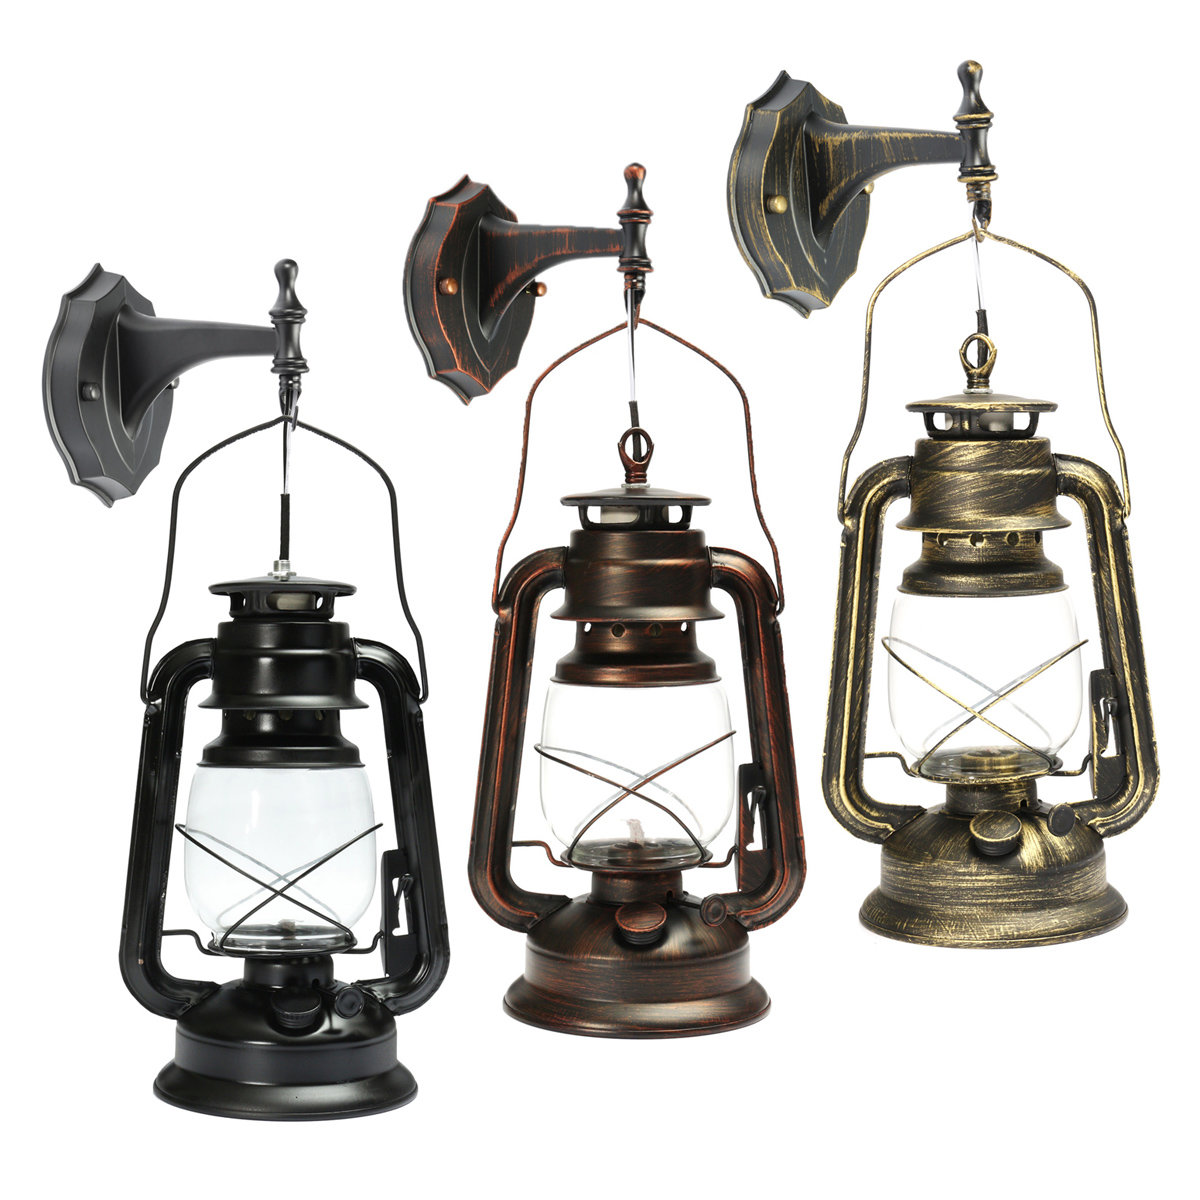 Vintage Retro Thrift Wall Lamp Lantern